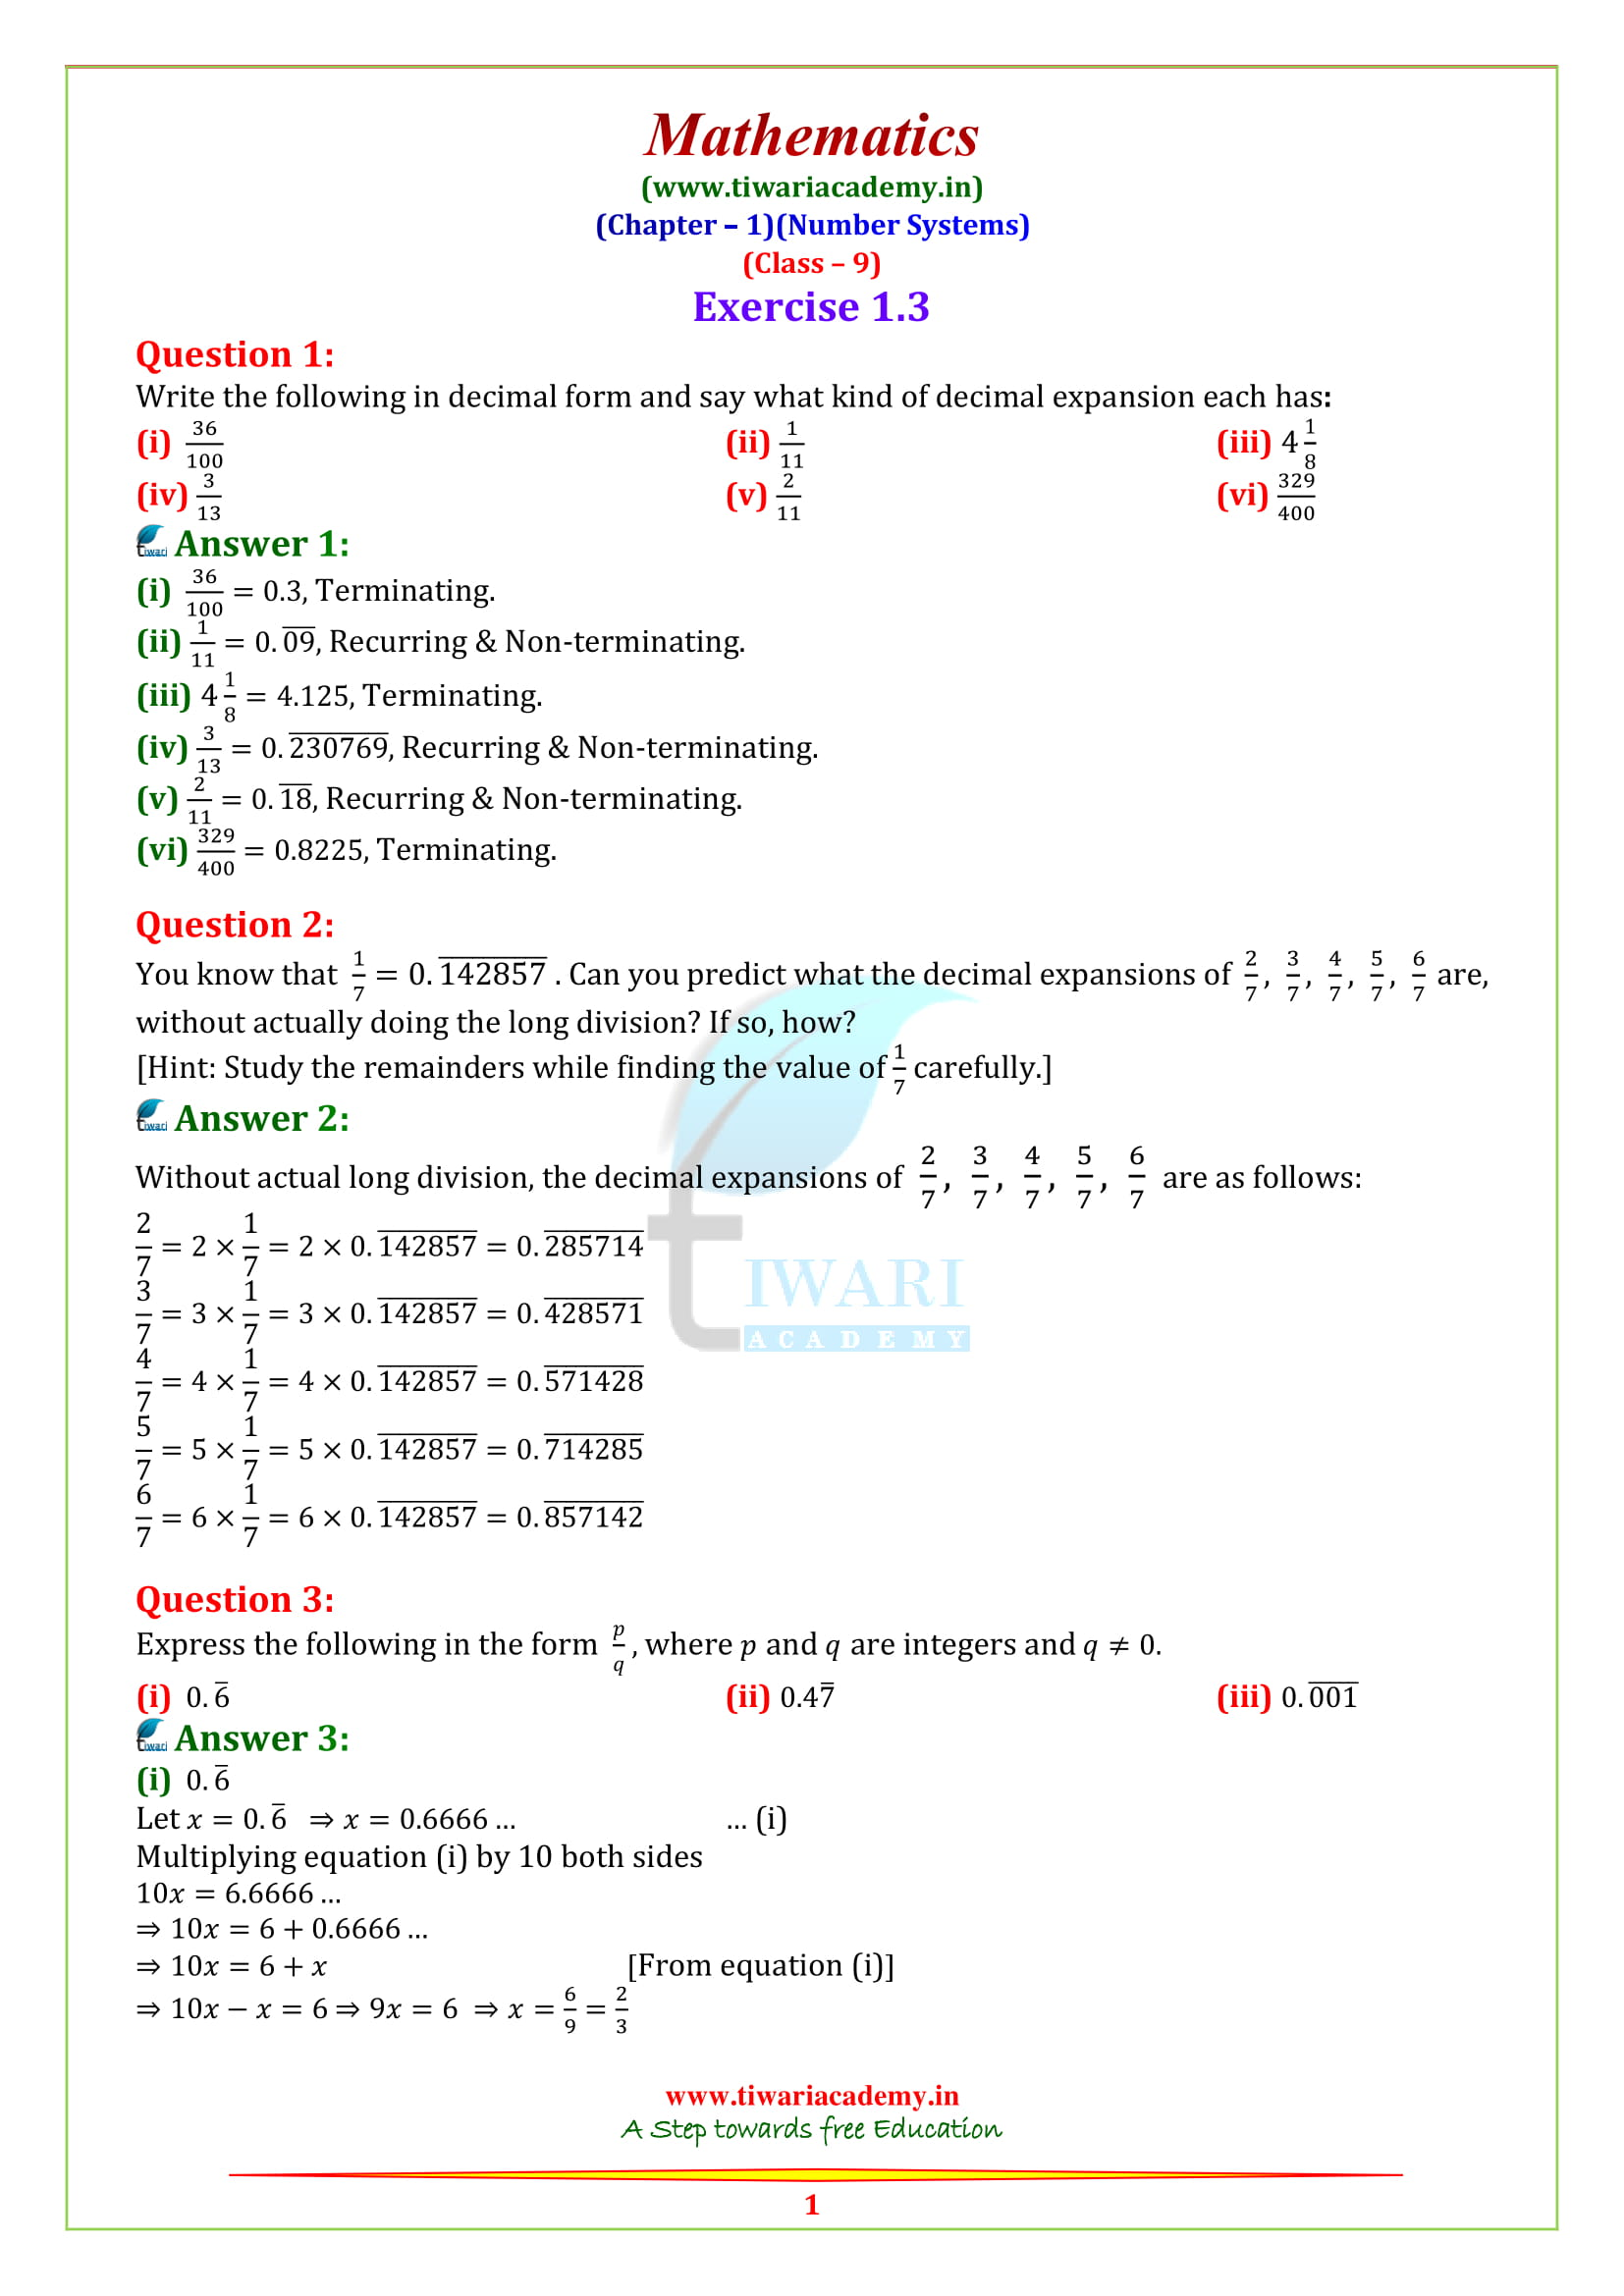 9th class math solution chapter 1 exercise 1.3 in hindi